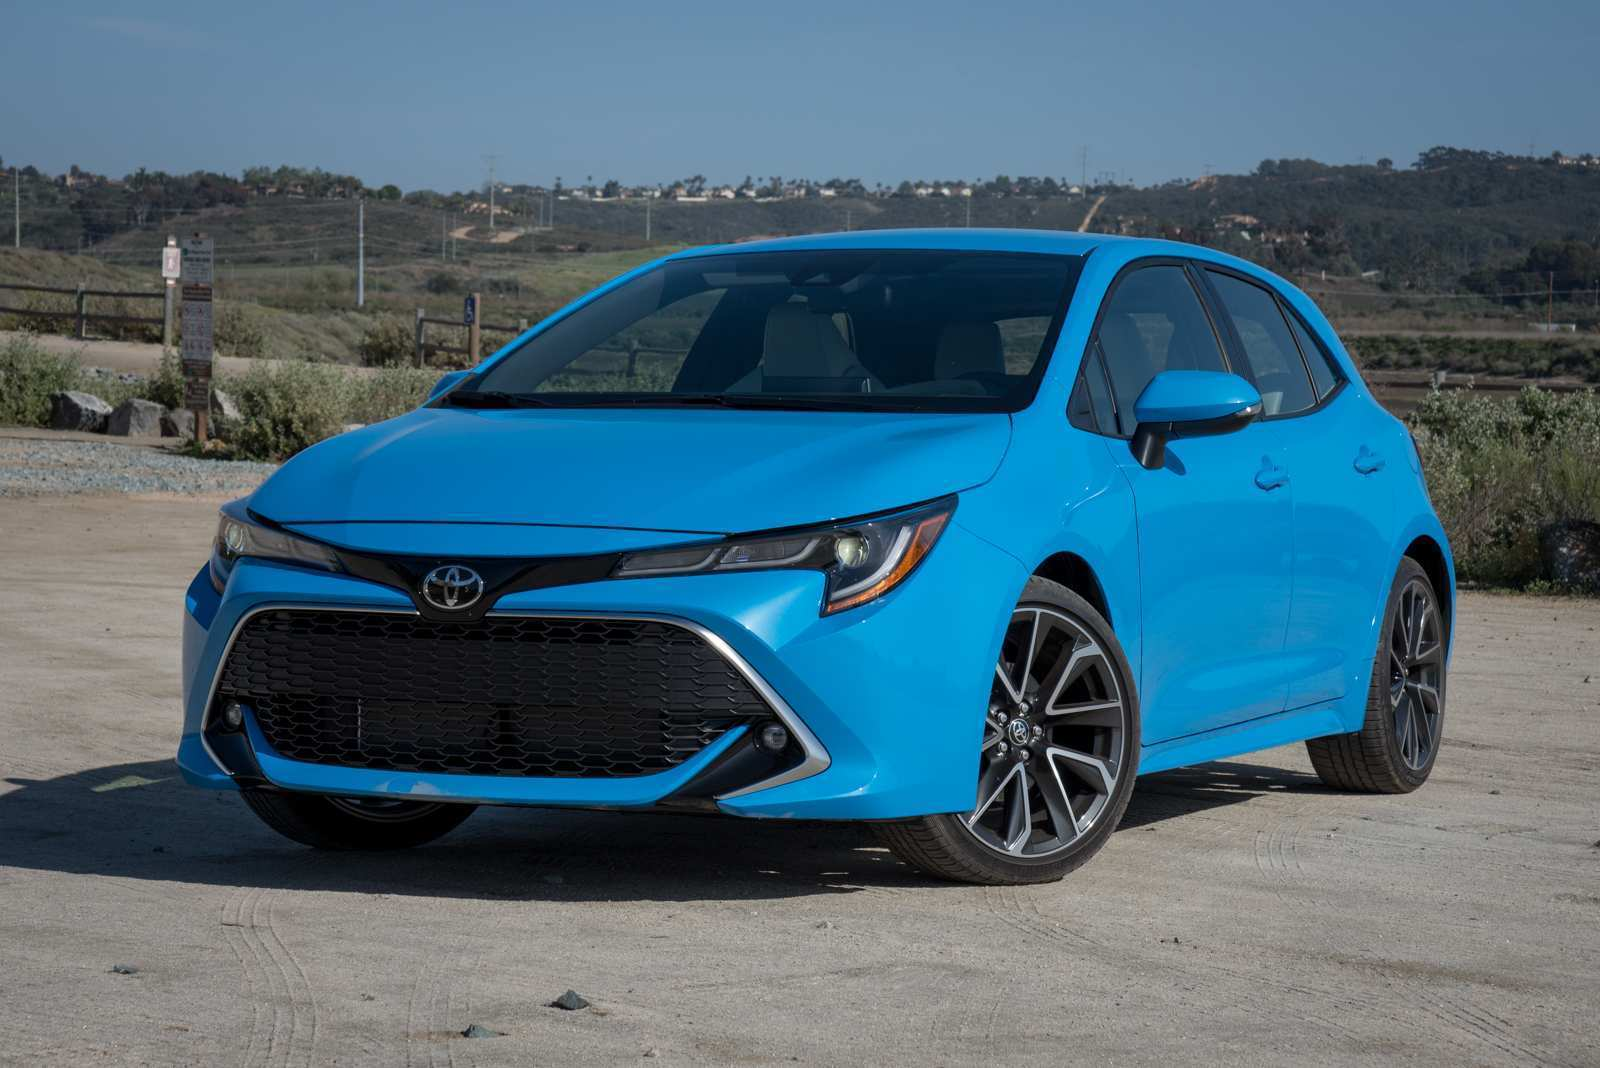 15 Concept of 2019 Toyota Corolla Hatchback Review Redesign for 2019 Toyota Corolla Hatchback Review